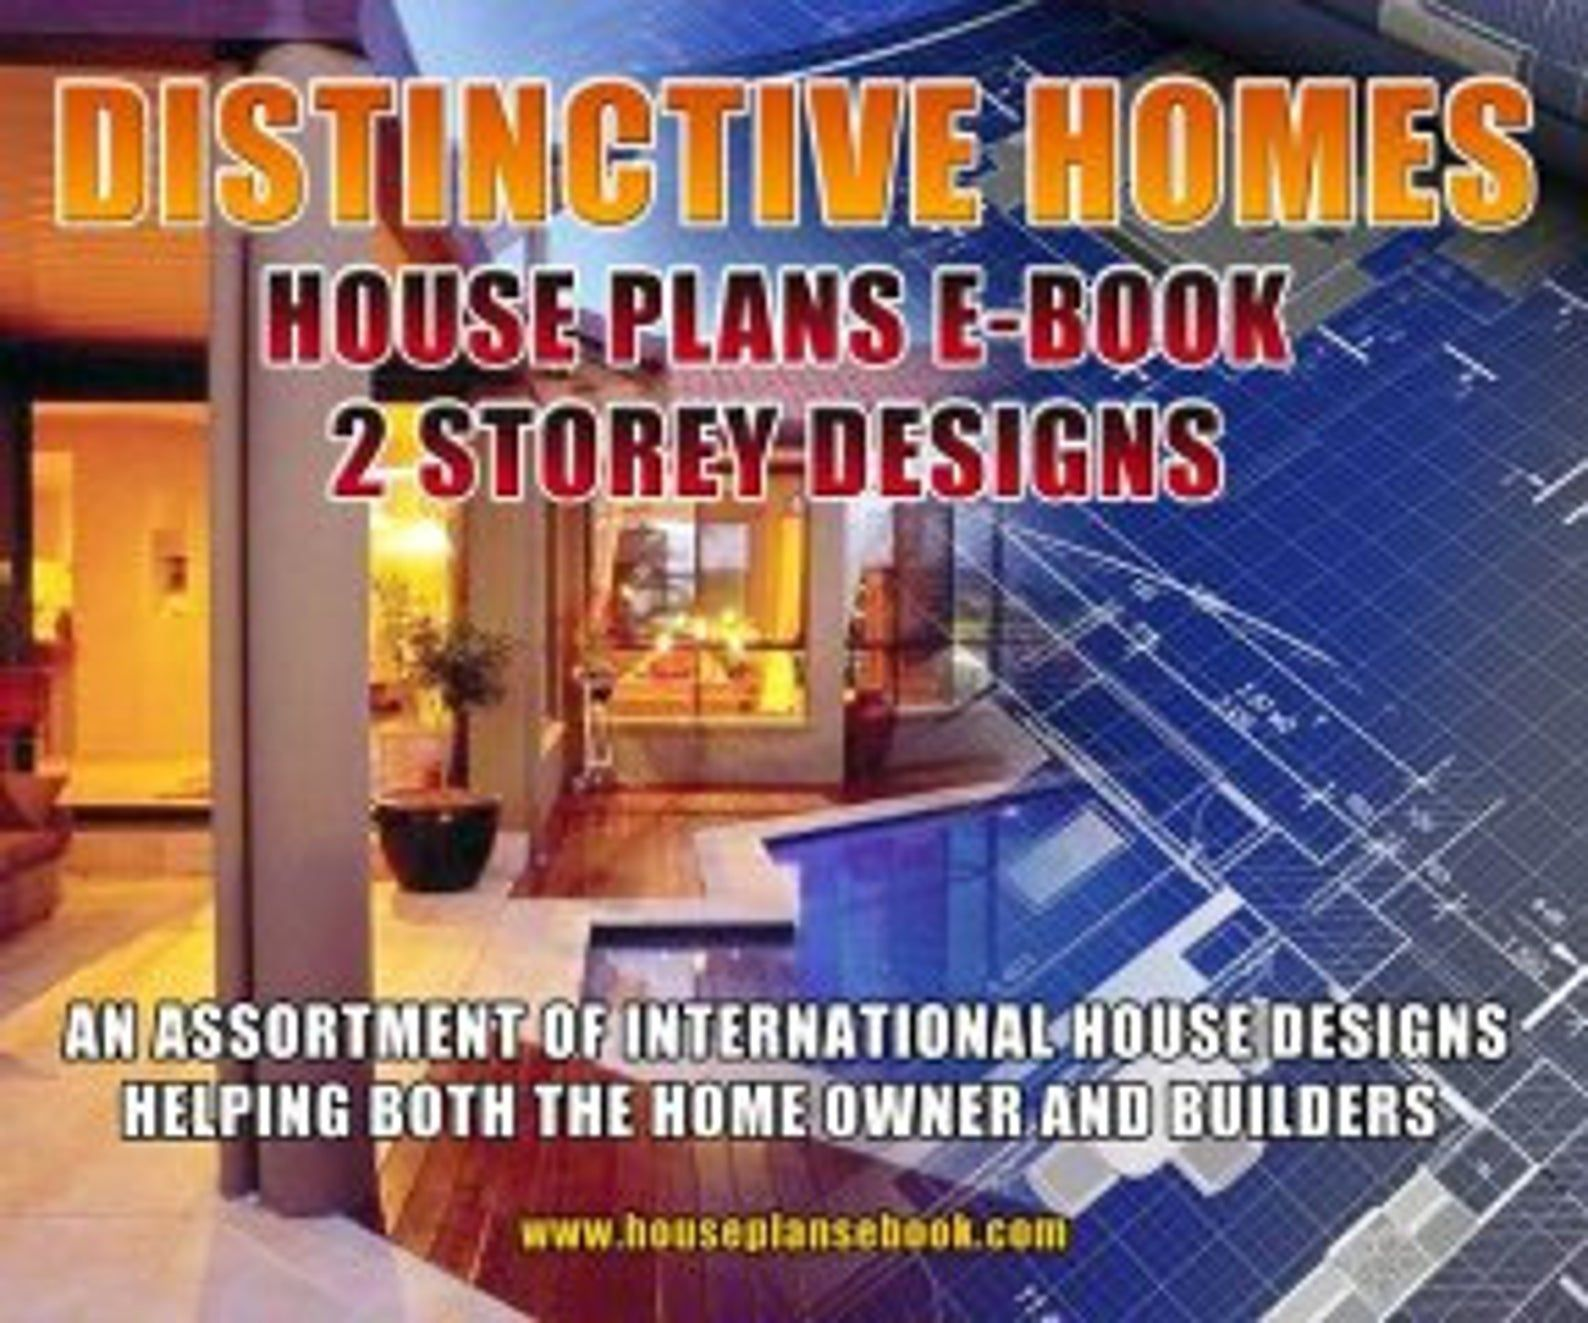 Two Storey House Plans Distinctive Homes Double Storey House Plans Modern Two Storey House Designs 2 Storey House Floor Plans In 2020 Two Storey House Plans Duplex Floor Plans Two Storey House